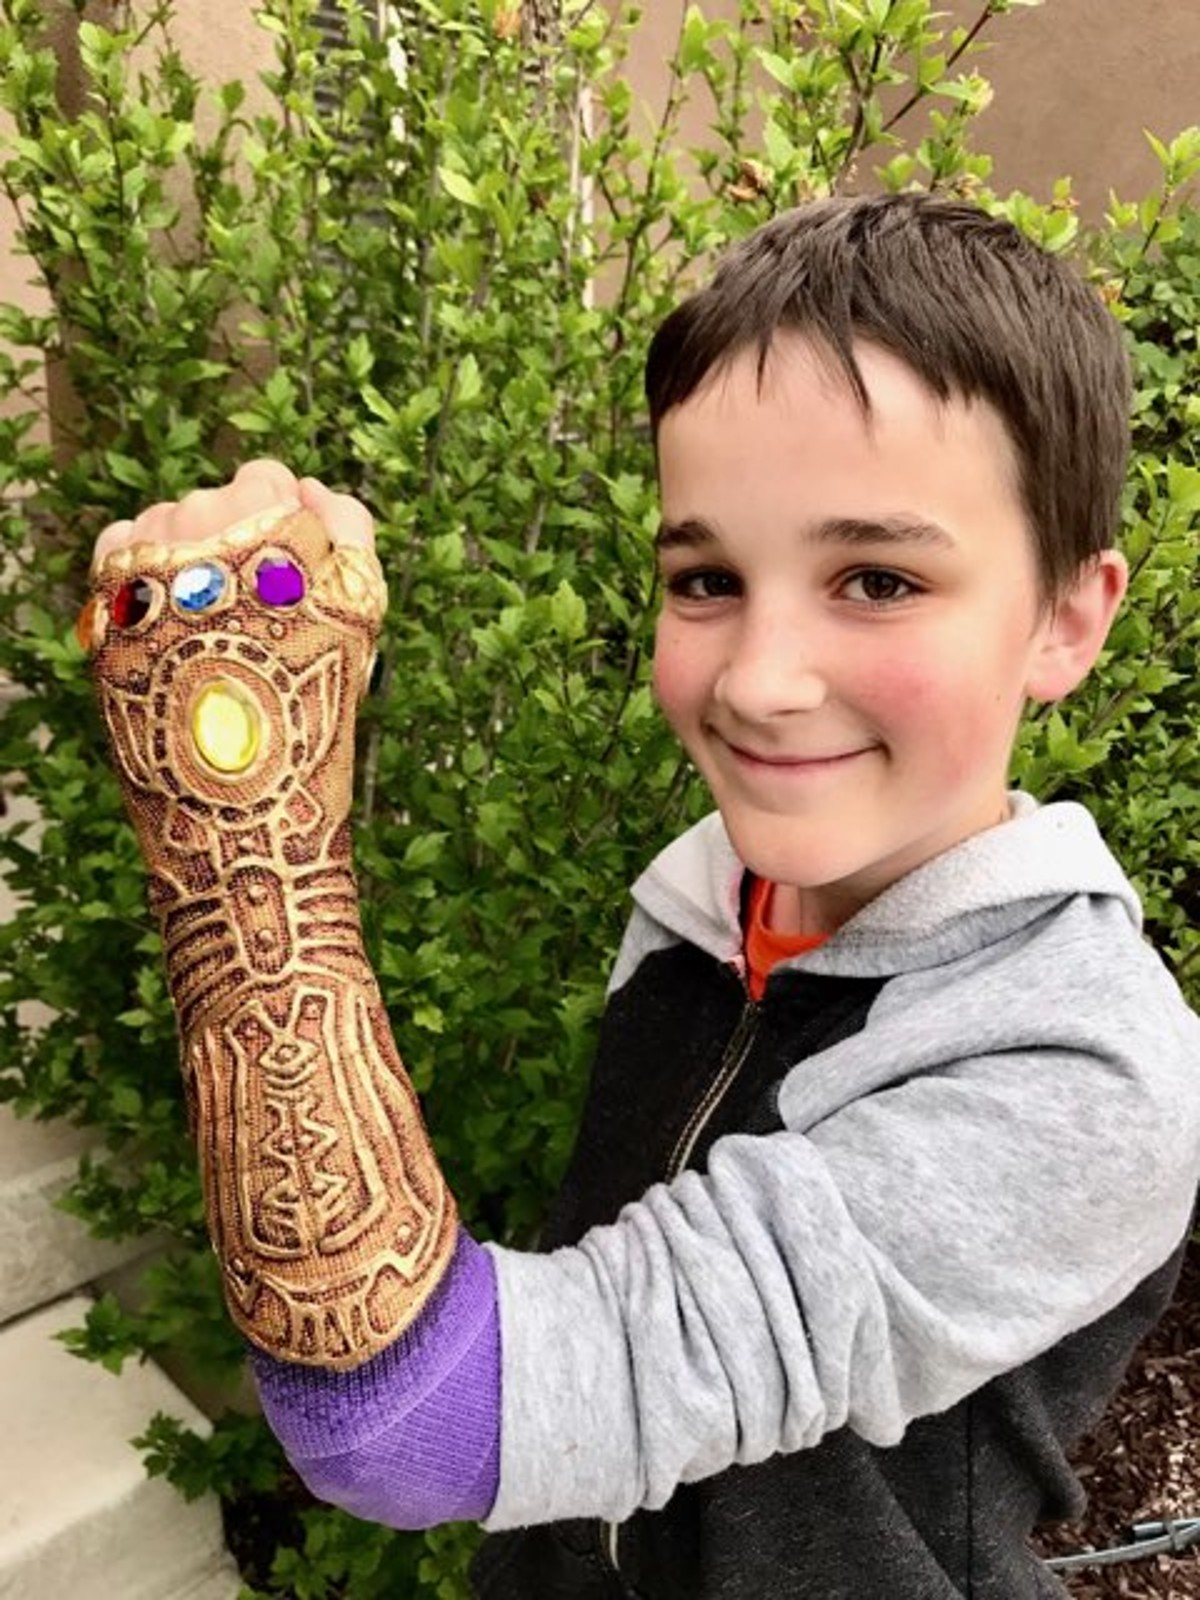 Utah teen goes viral for awesome Infinity Gauntlet cast from